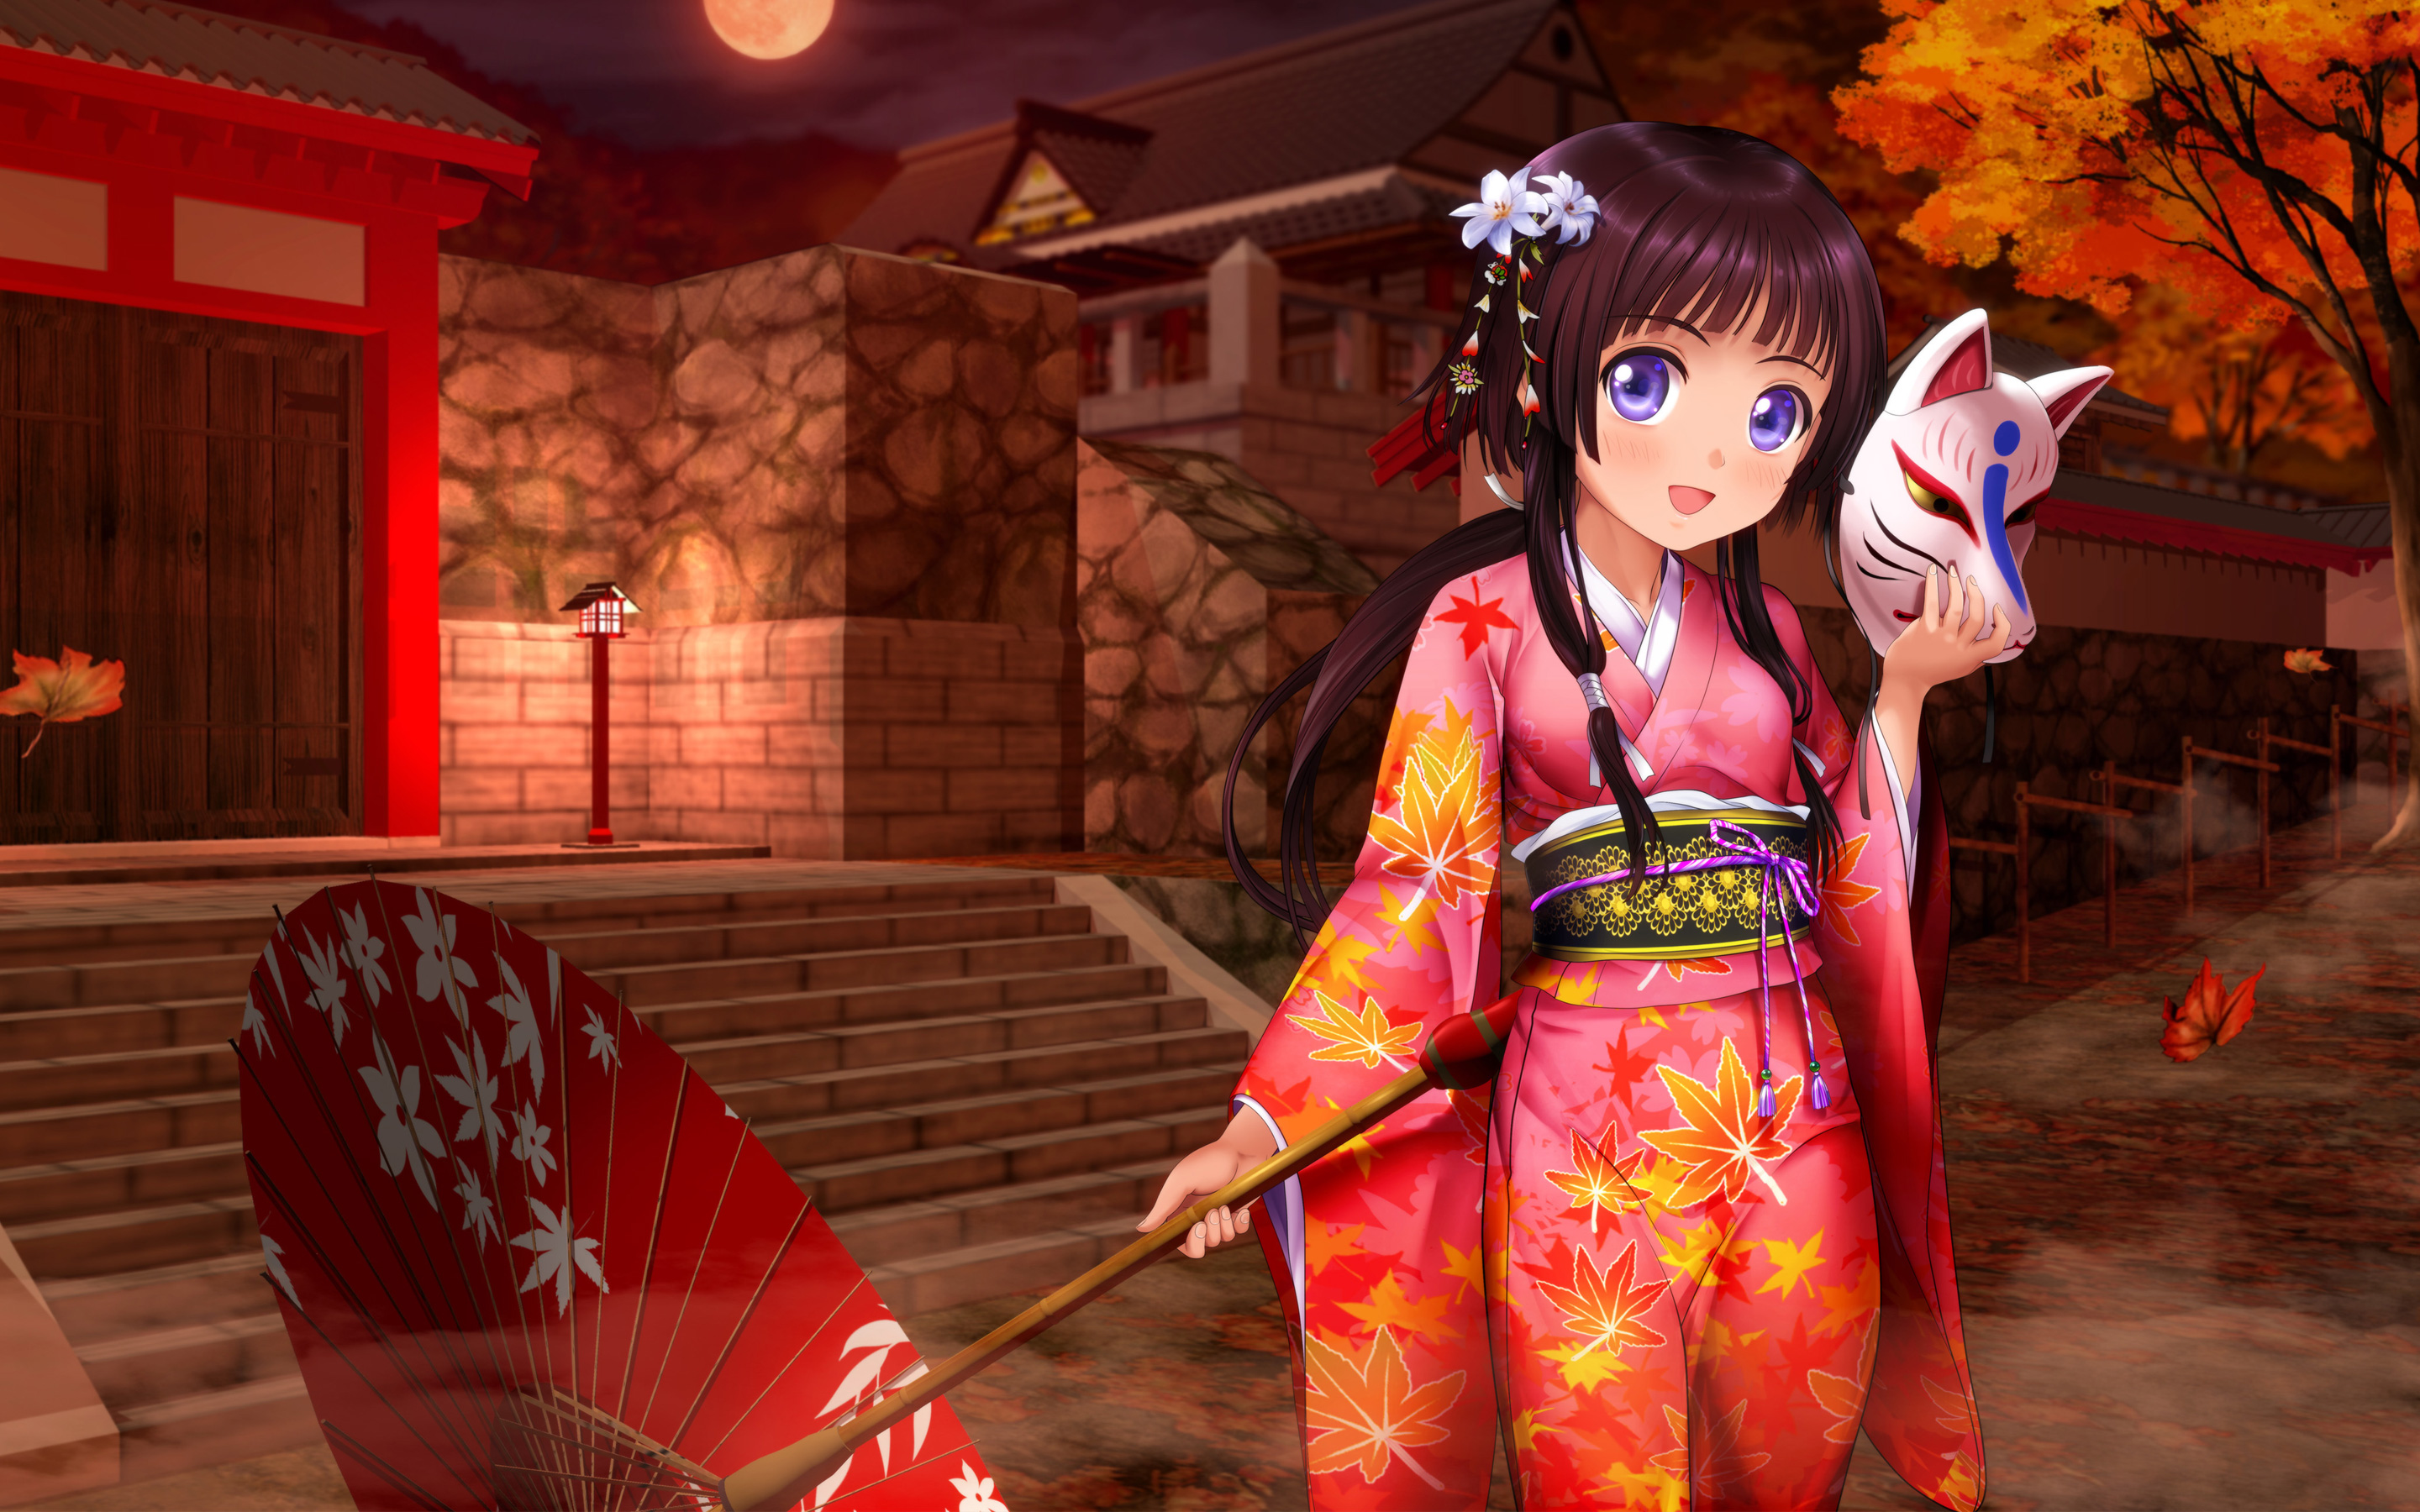 Anime Girl Kimono Umbrella wallpaper